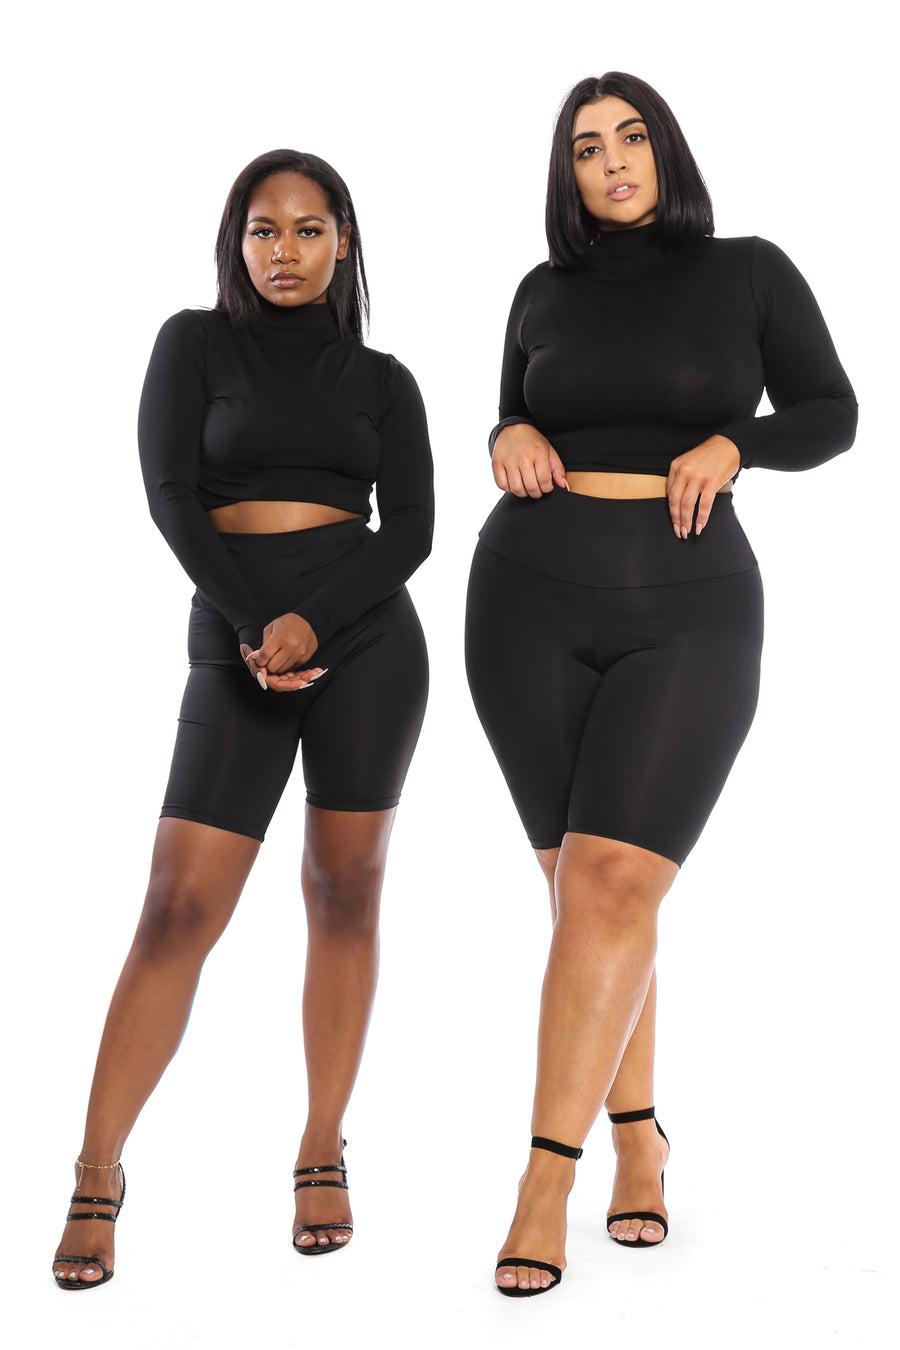 TUMMY CONTROL High Waist Black Babe Biker Short - Babes And Felines | Specializing in Fashionable Staple Pieces for Every Shape and Size